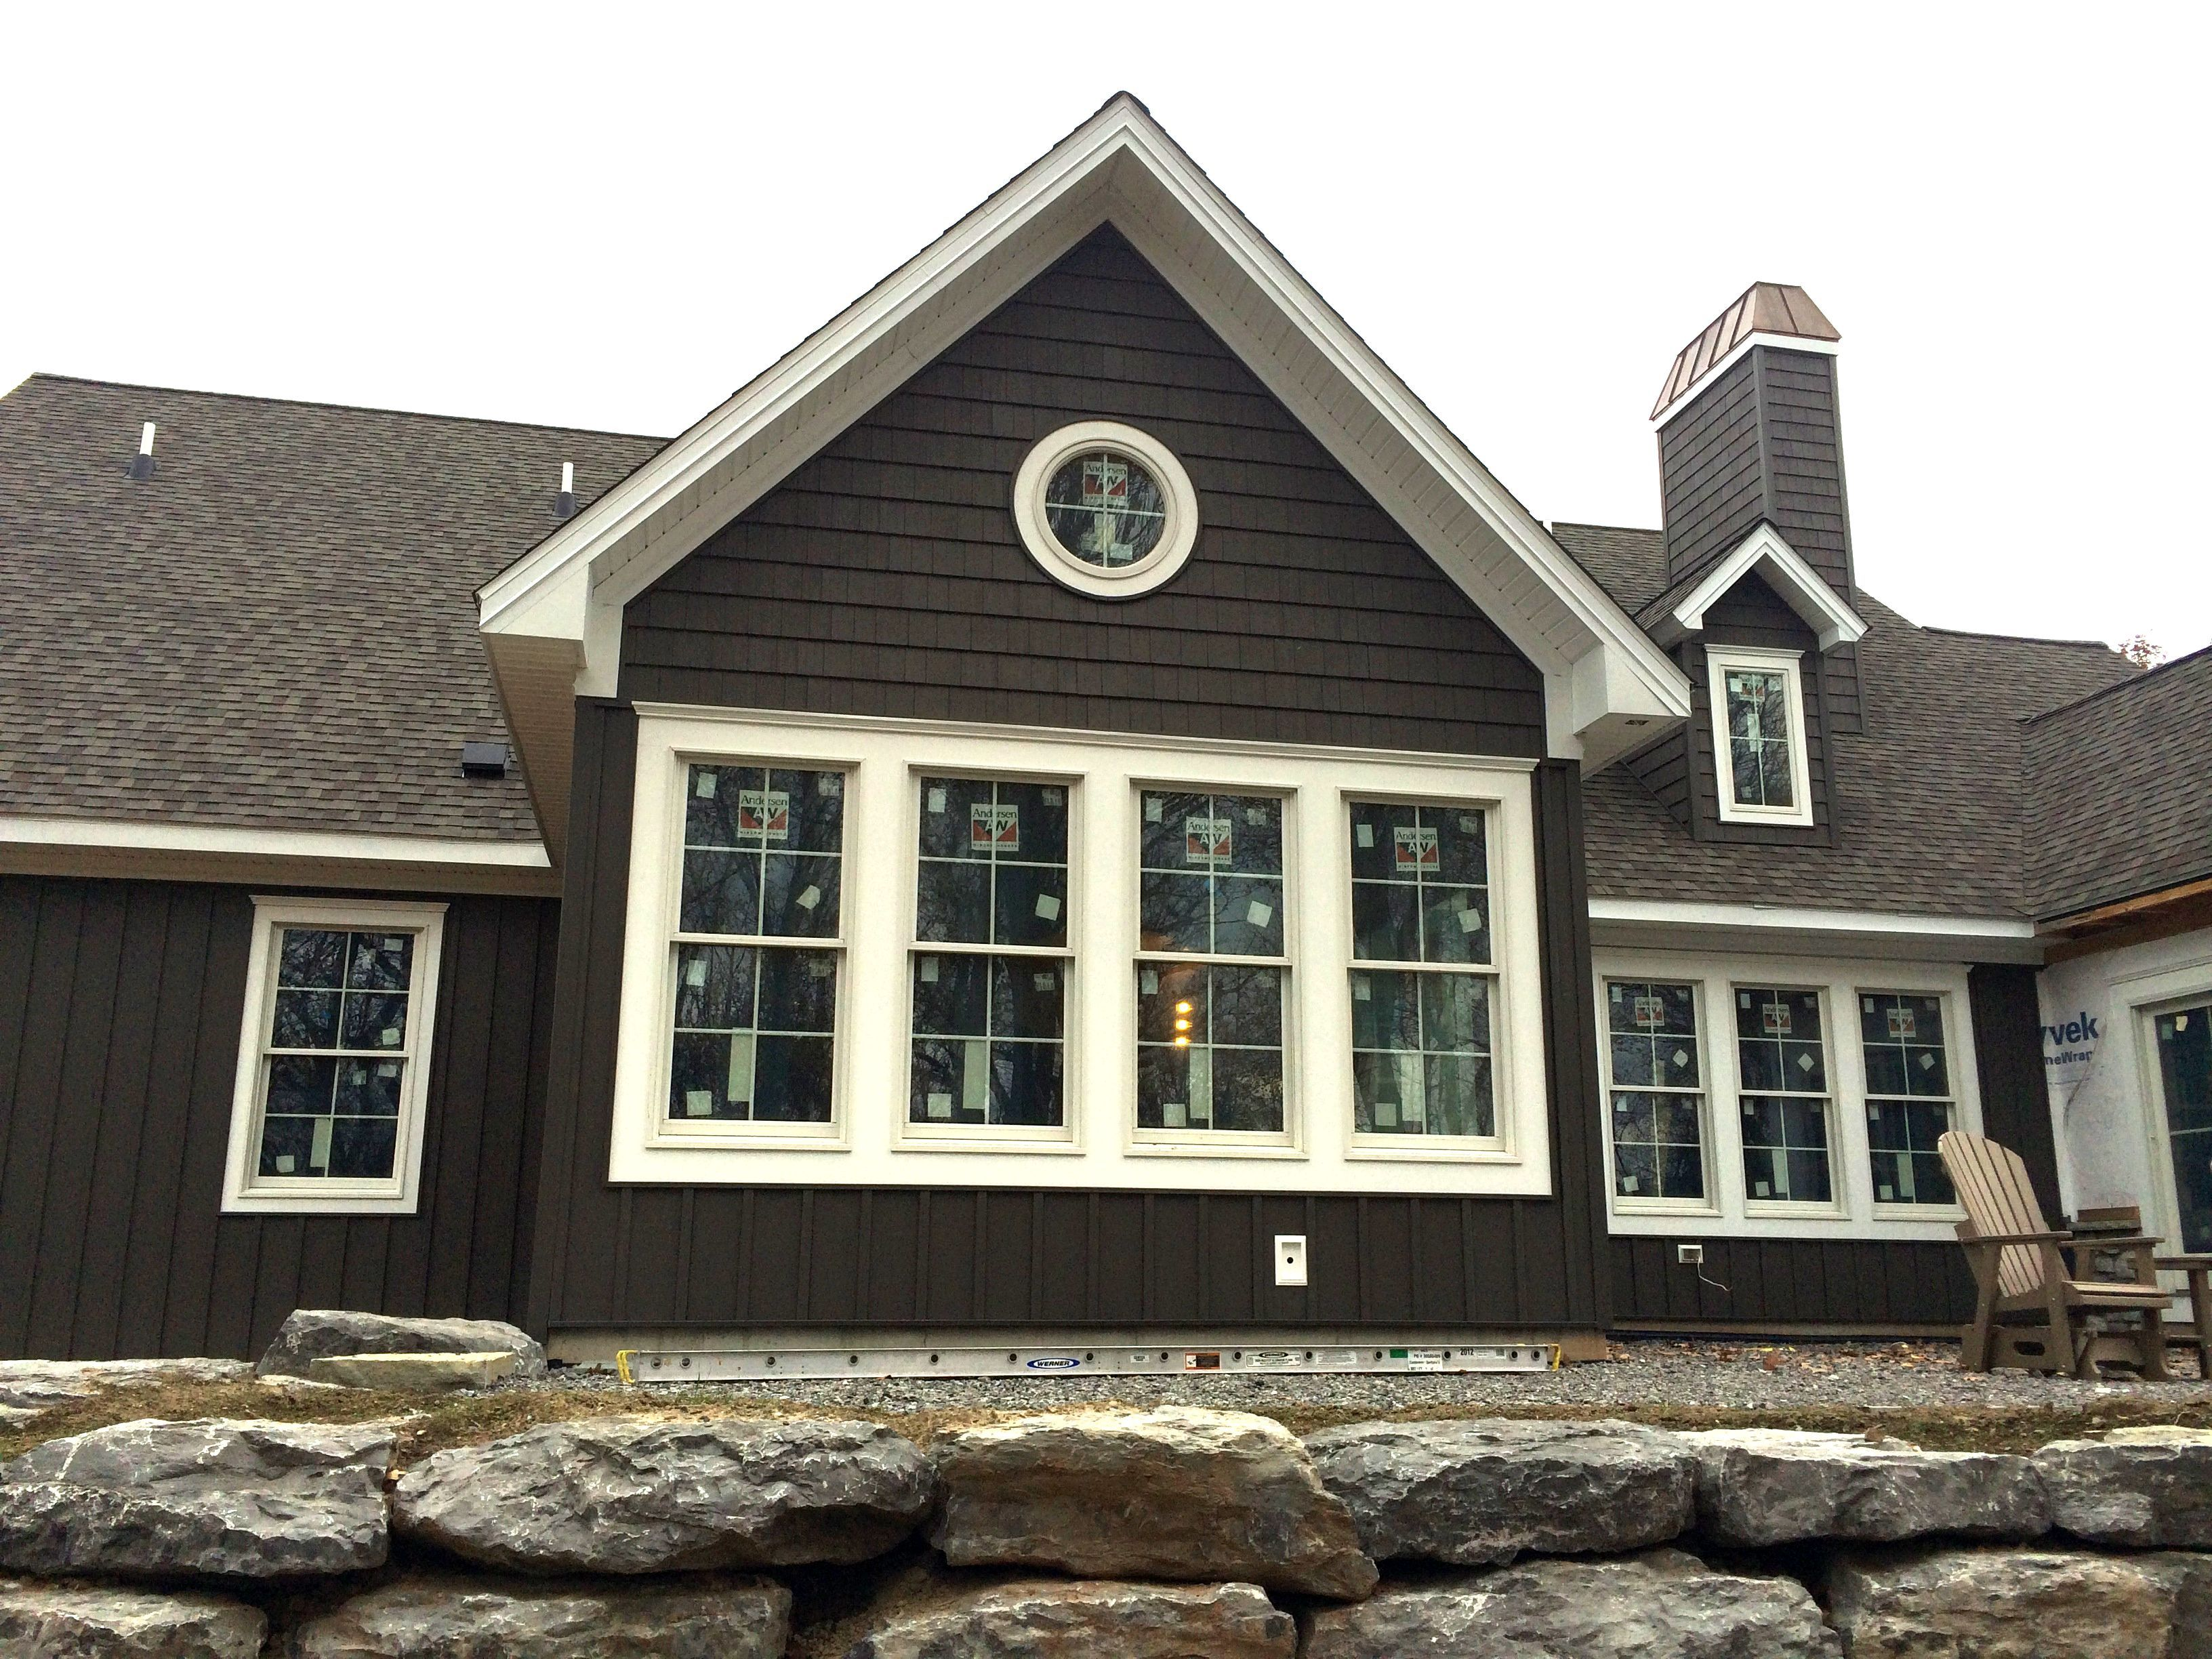 CraneBoard® 7 In Graphite With White Windows U0026 Trim | Exterior Portfolio  Siding | Pinterest | Stone Chimney, Graphite And House Projects